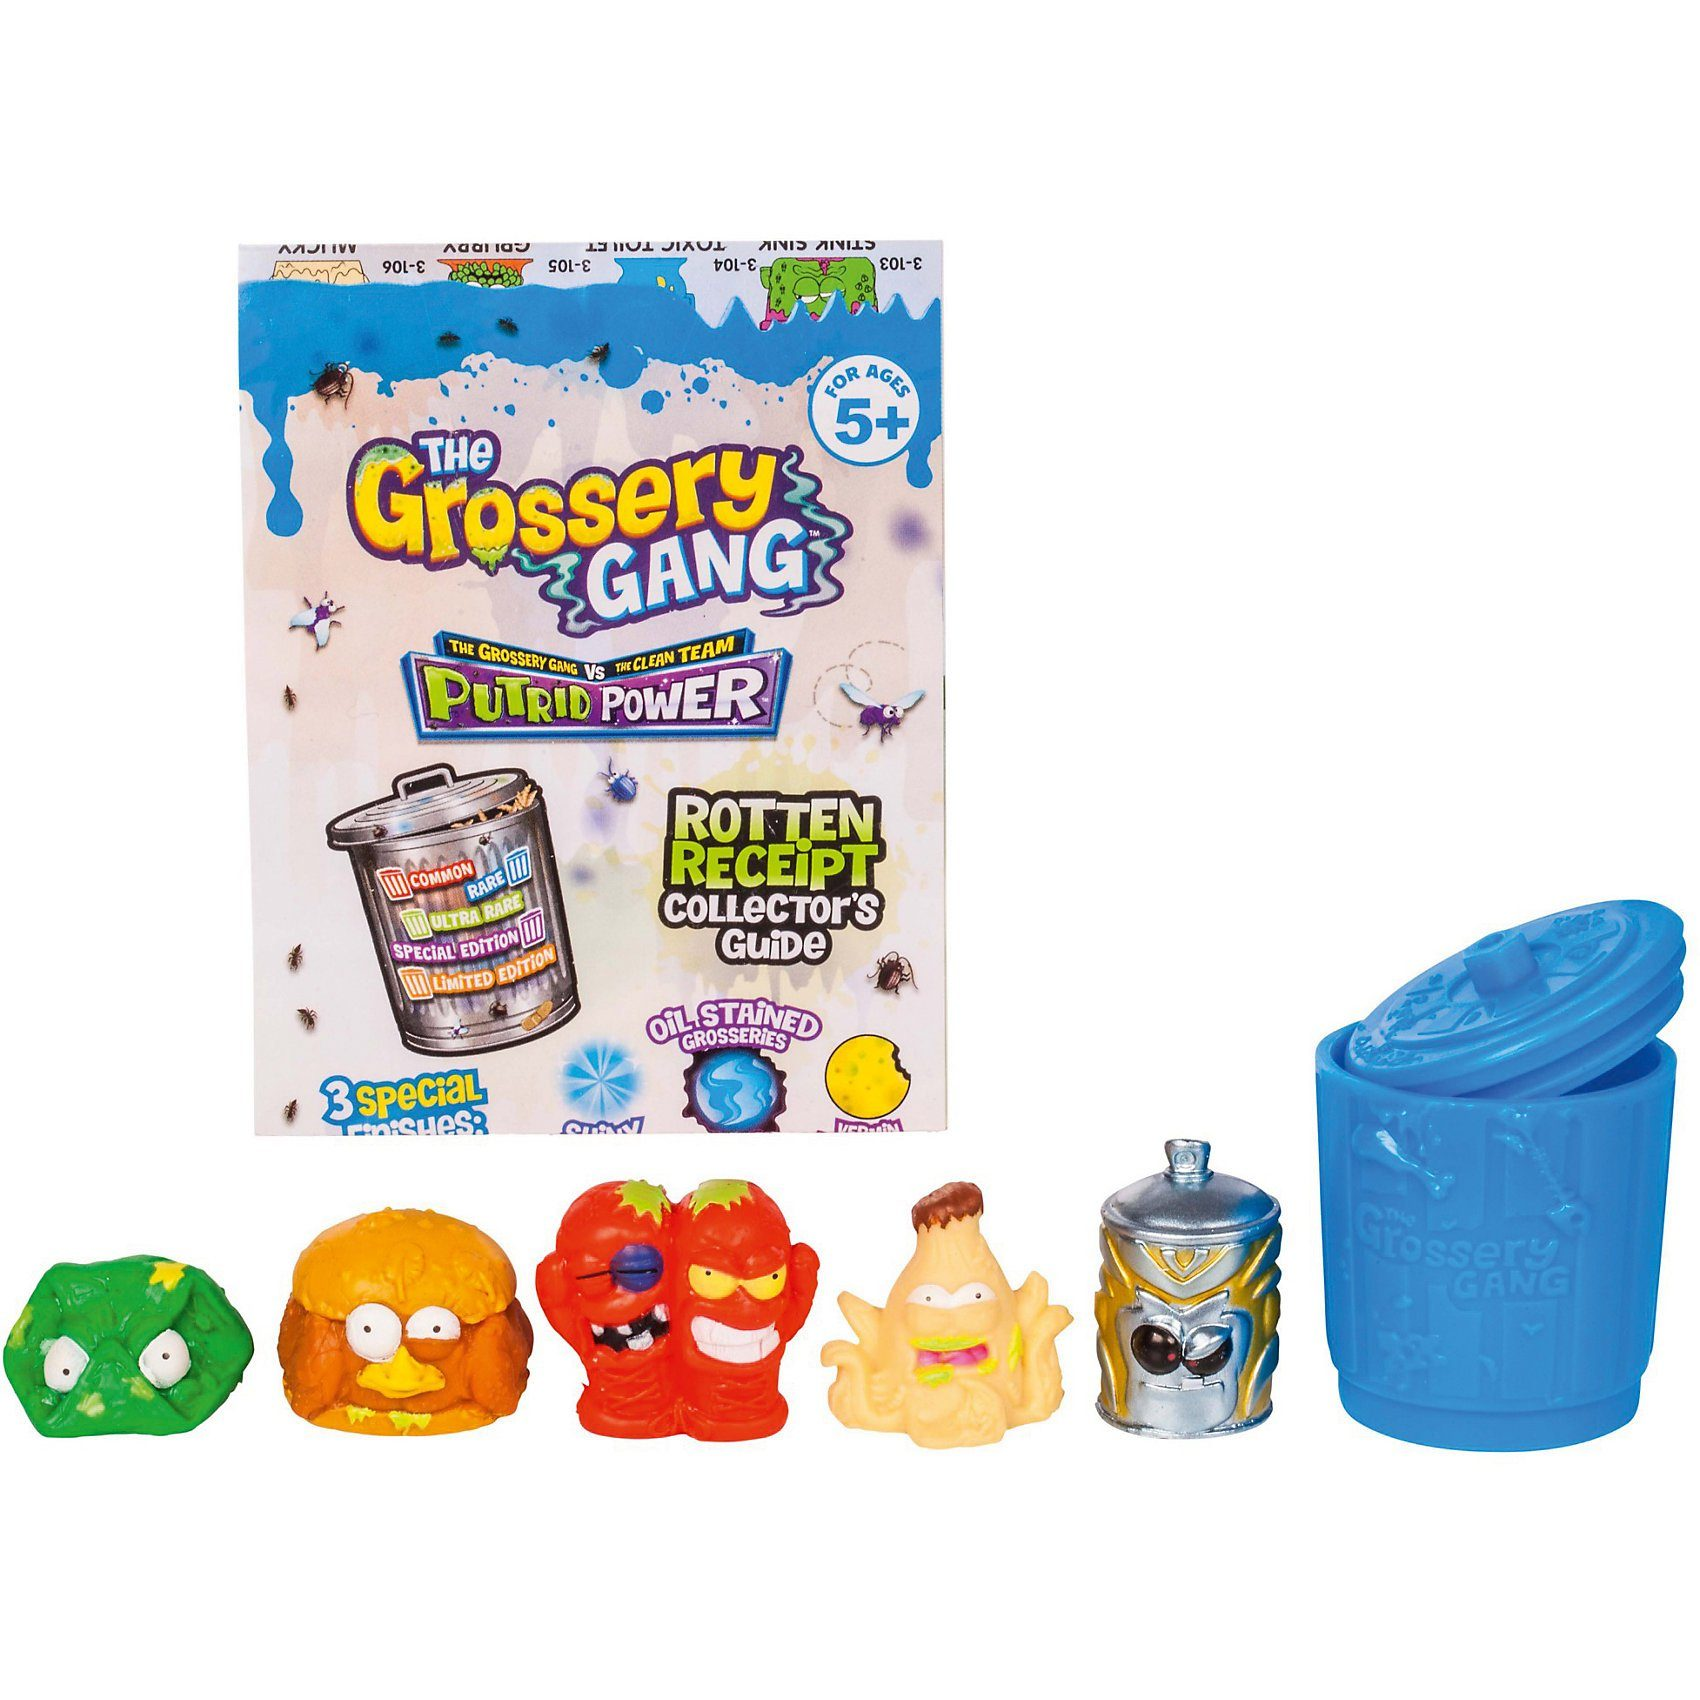 SIMBA Grossery Gang Putrid Power, Sammelfiguren, 5er Pack